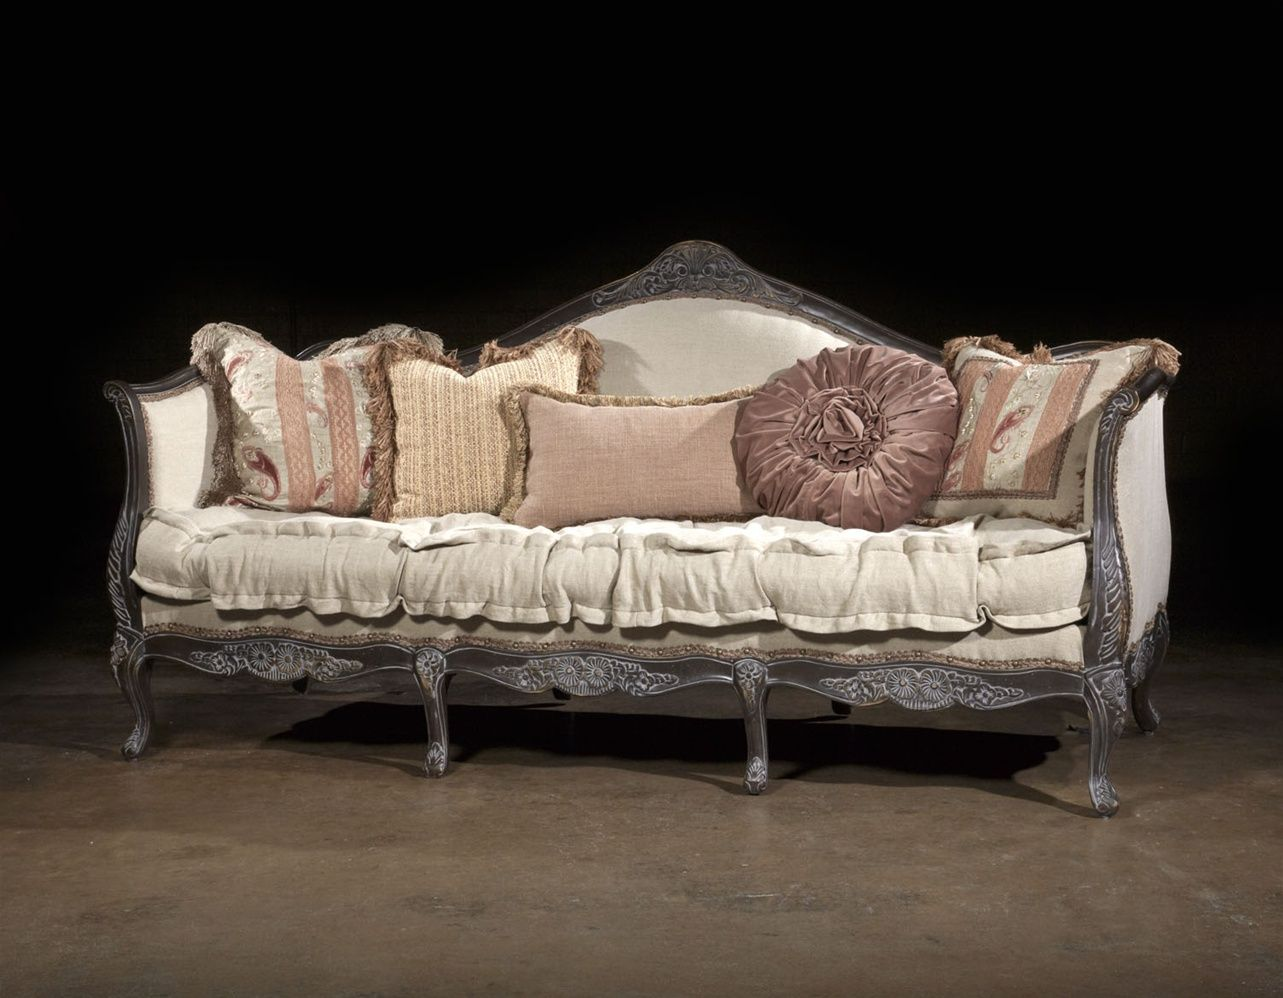 French style furniture county French sofa Sofa Pinterest. French style furniture